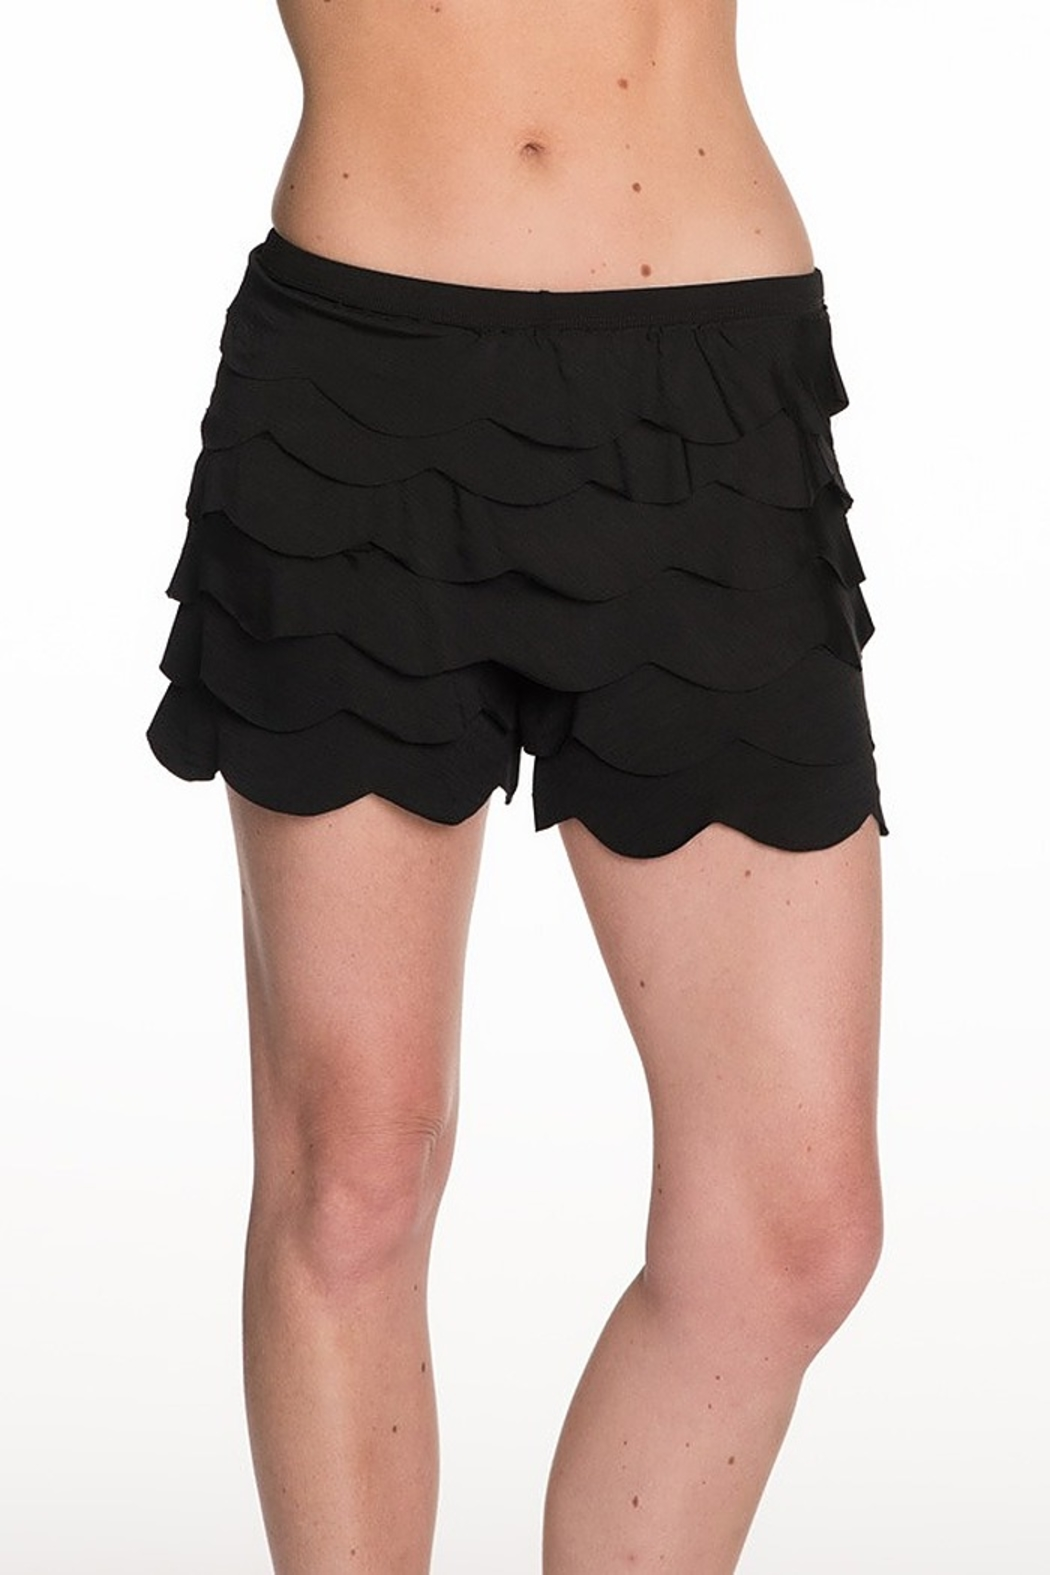 Isle Apparel Cha Cha Shorts - Main Image